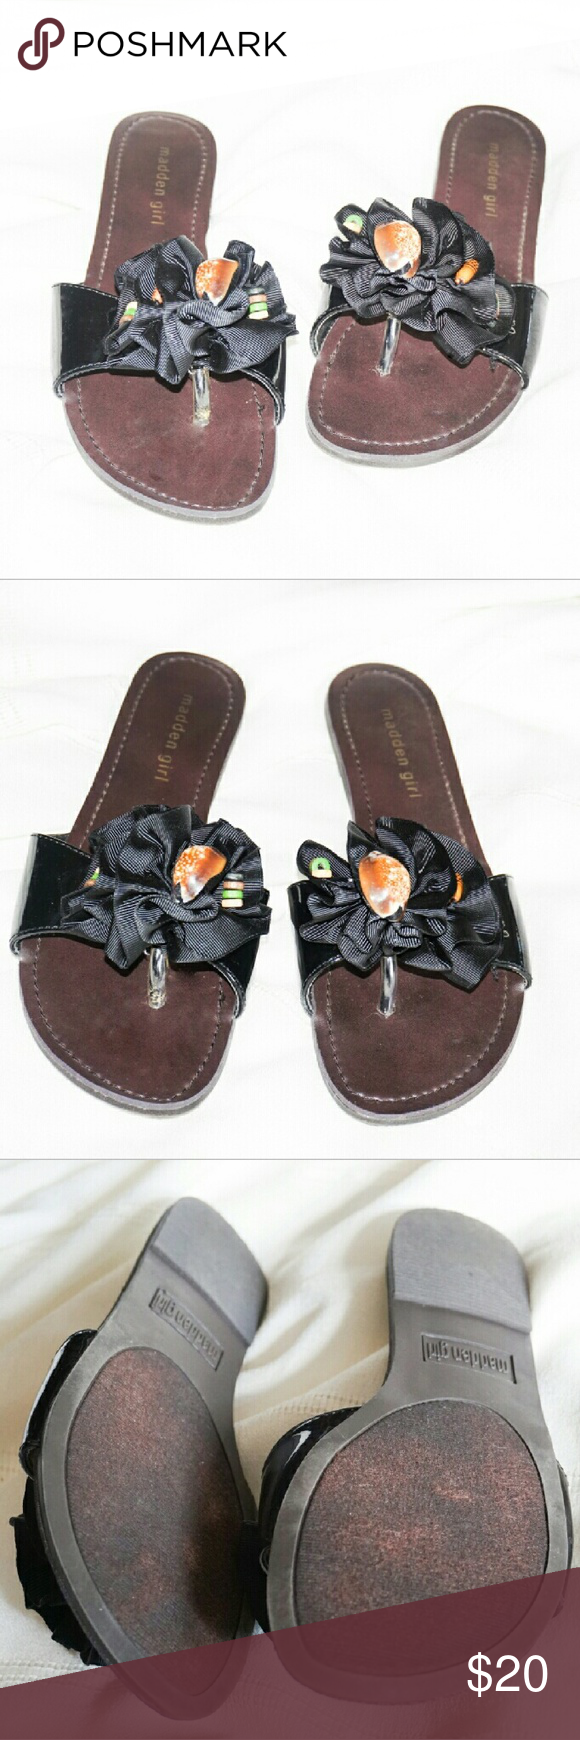 Madden Girl Slip-ons Like new condition. Same day shipping. 20% bundle discount for 3 or more. Accepts reasonable offers. Madden Girl Shoes Slippers